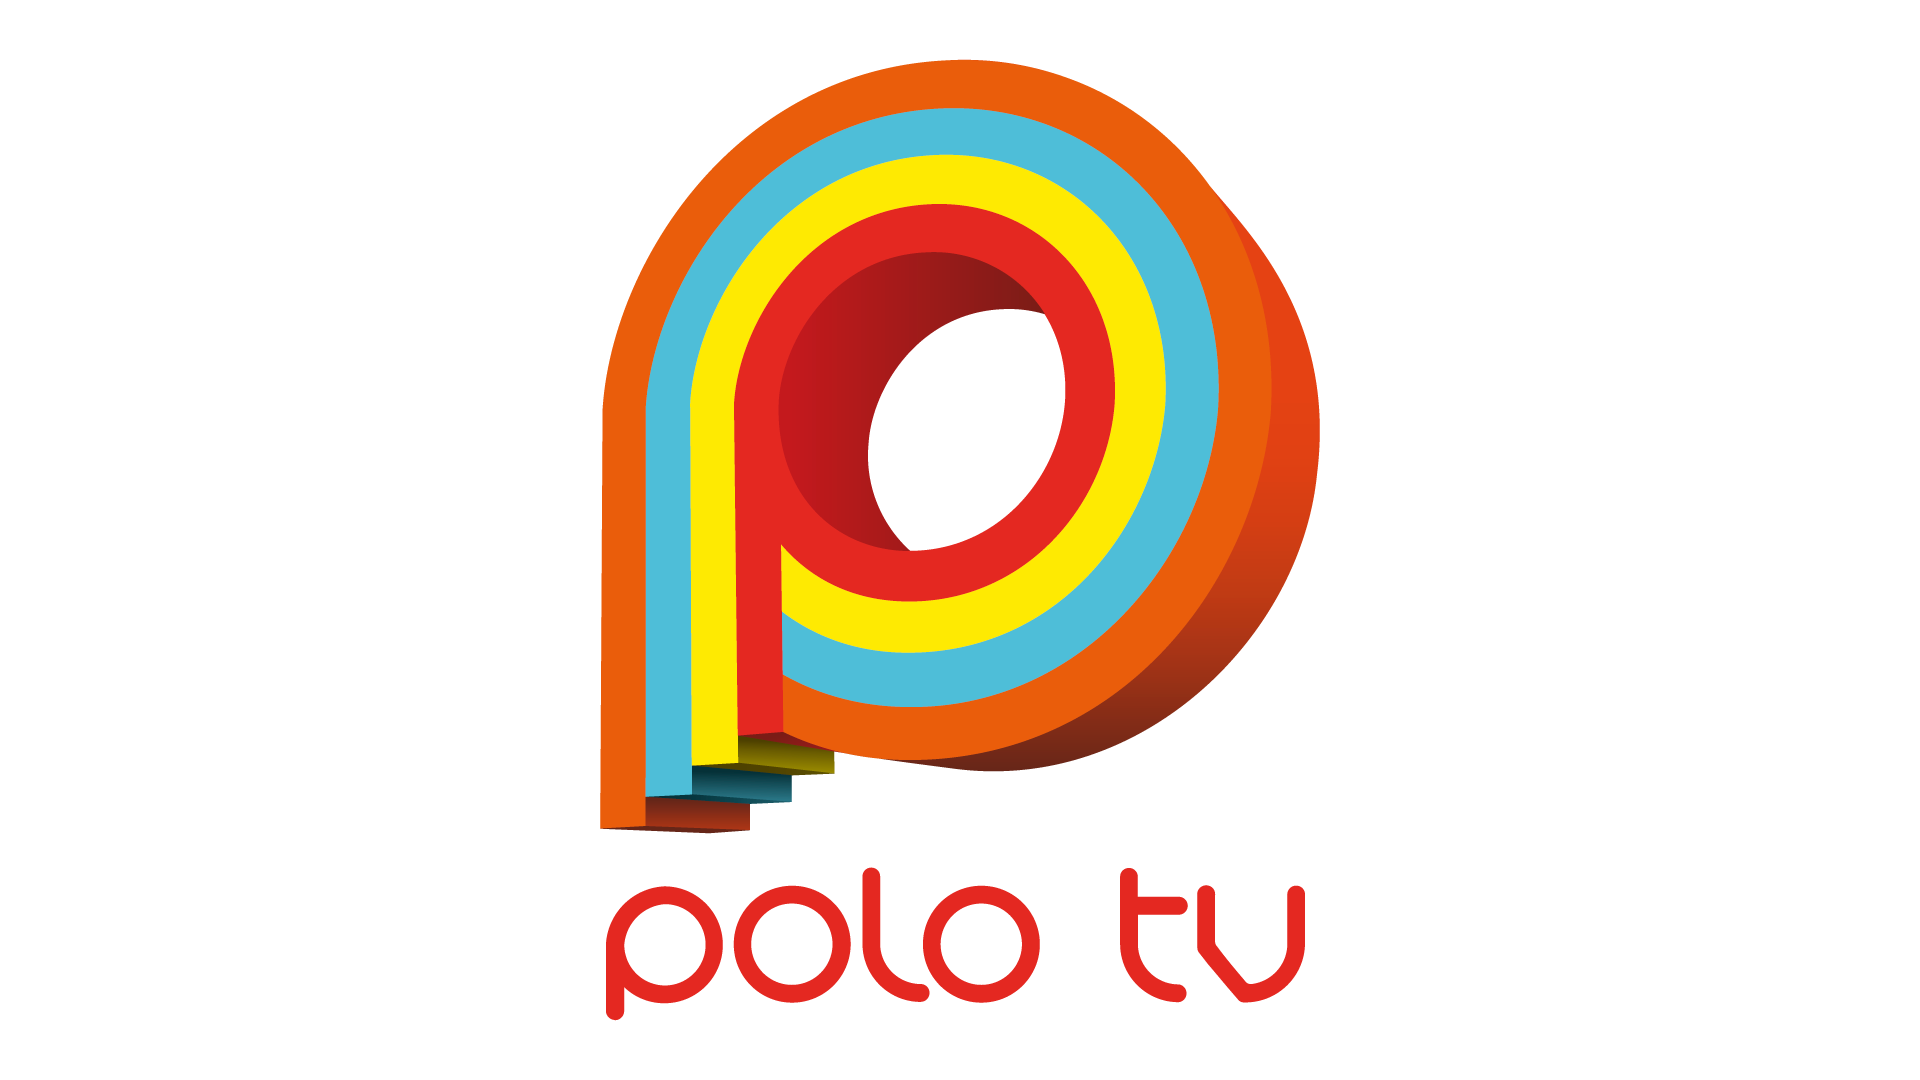 Polo TV Live TV, Online